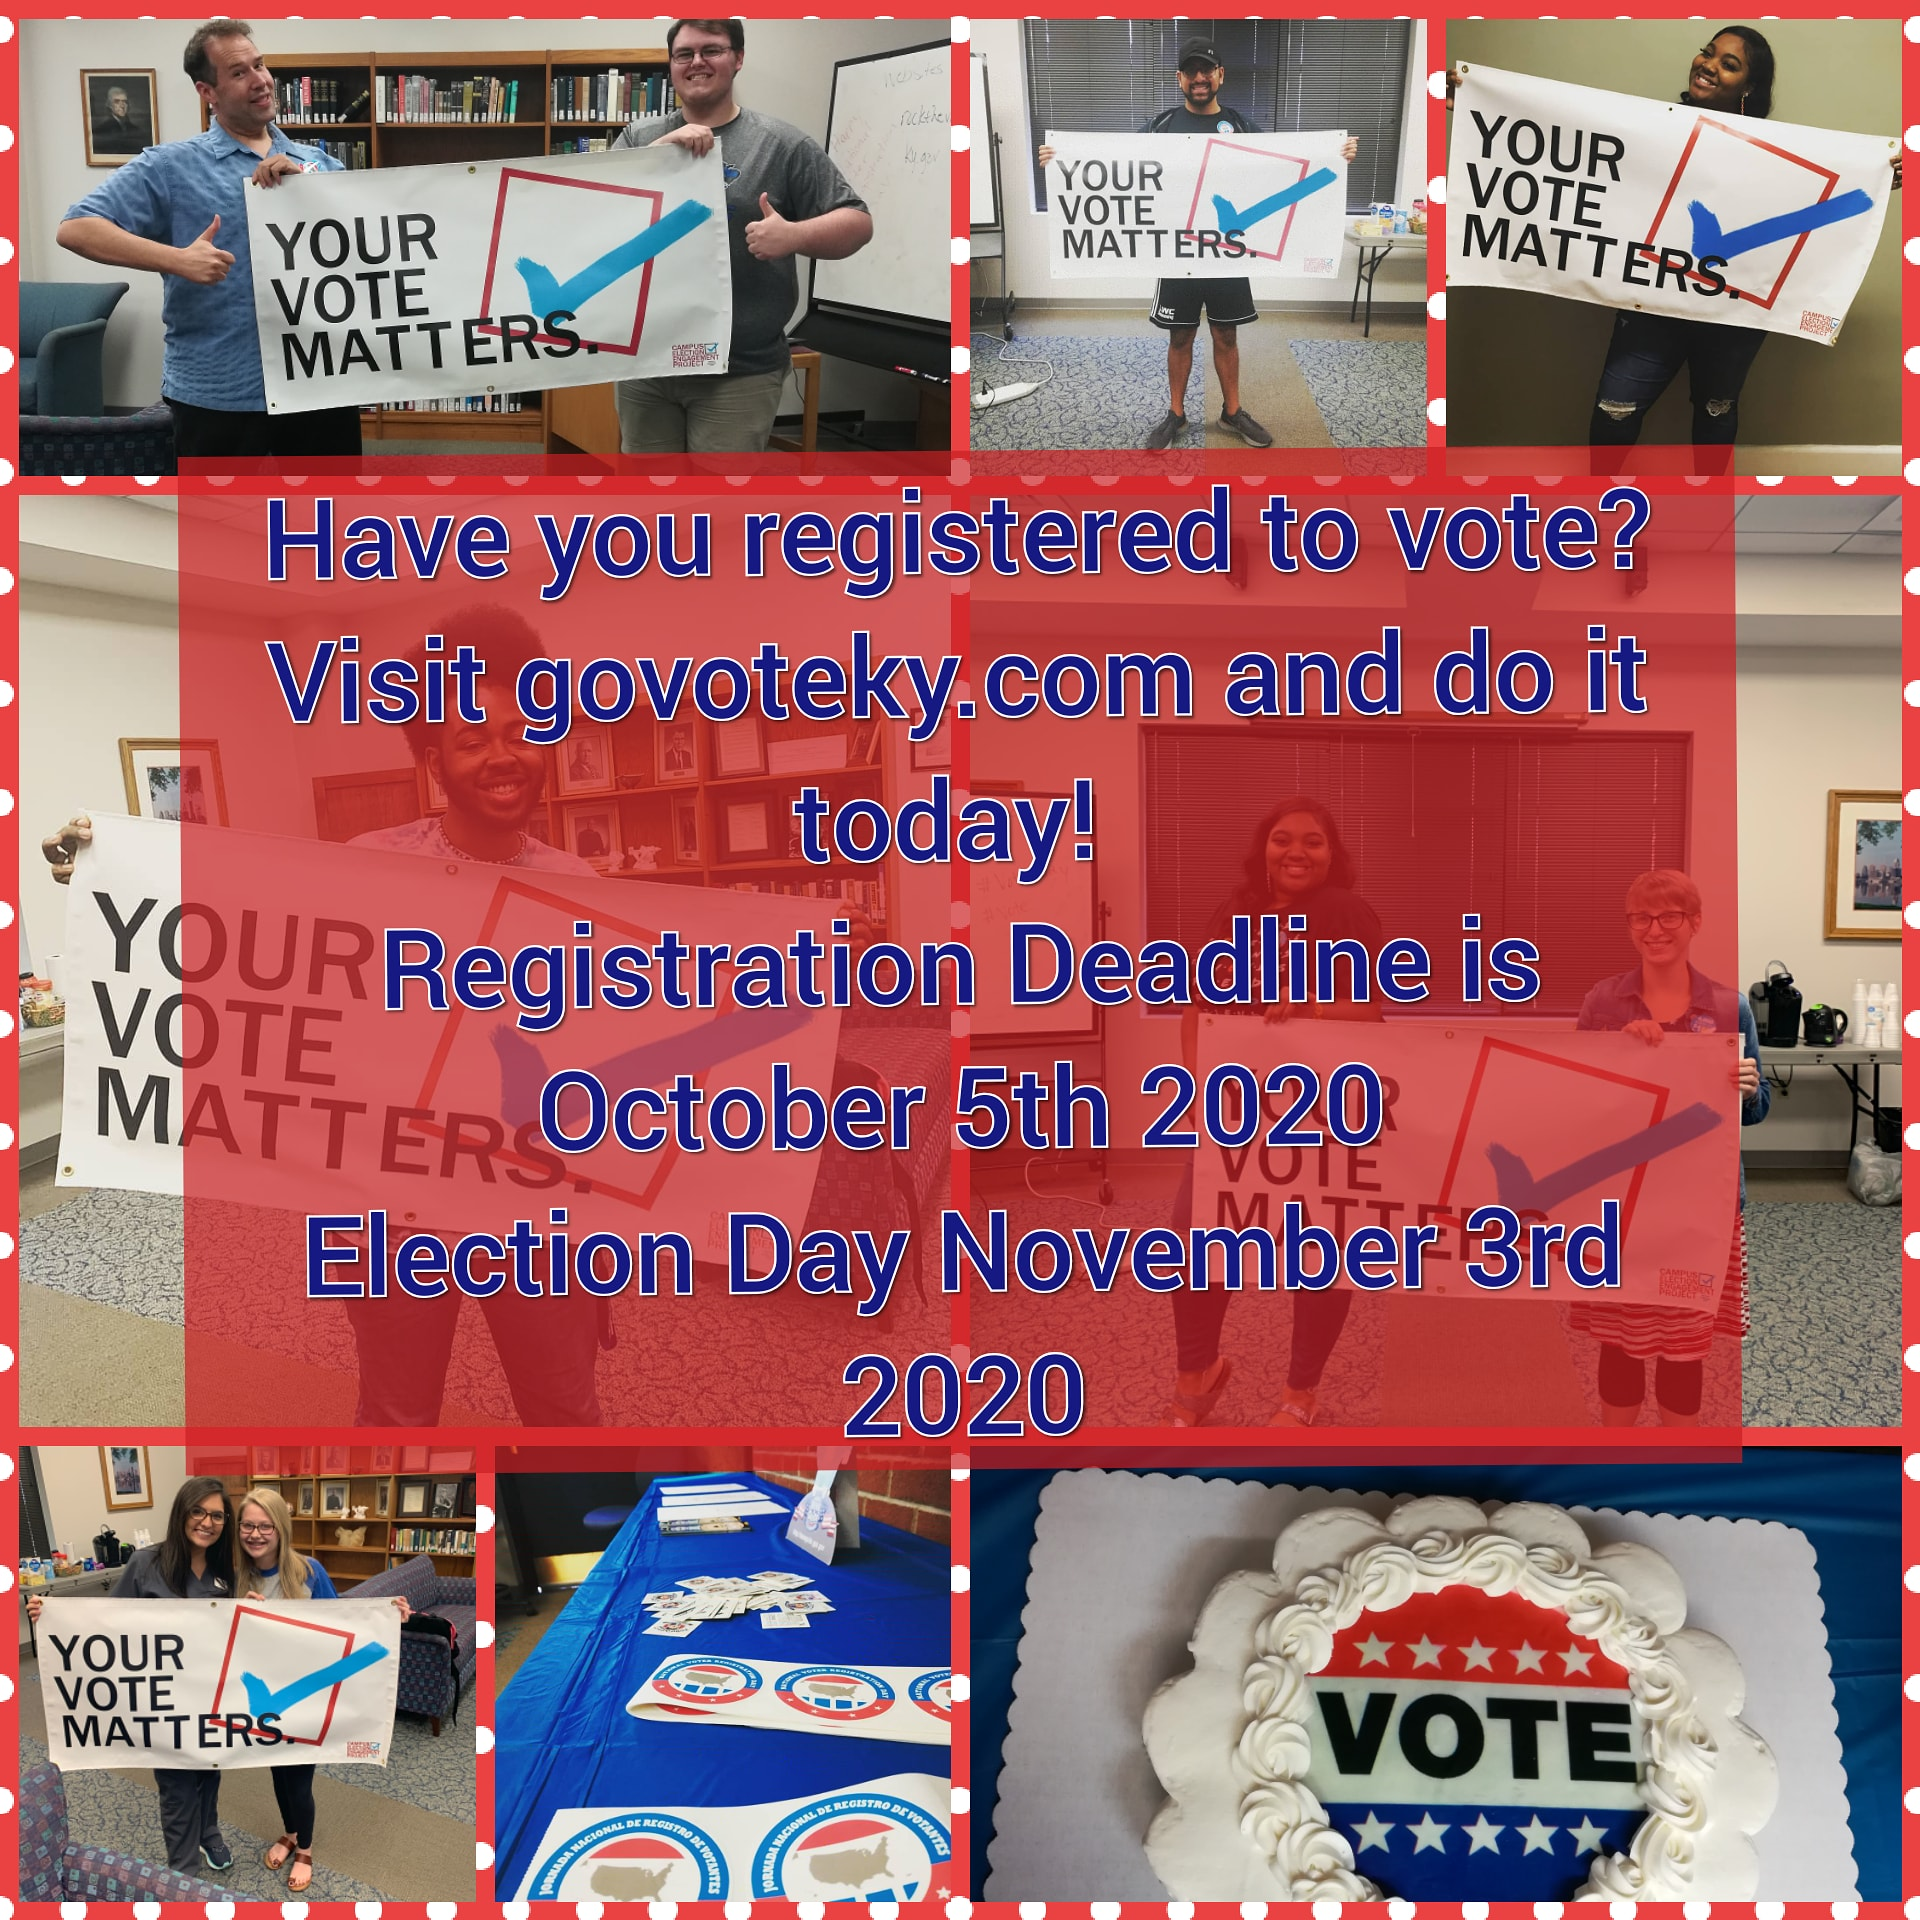 Register to vote! images from past event and displays from voter registration drive 2019